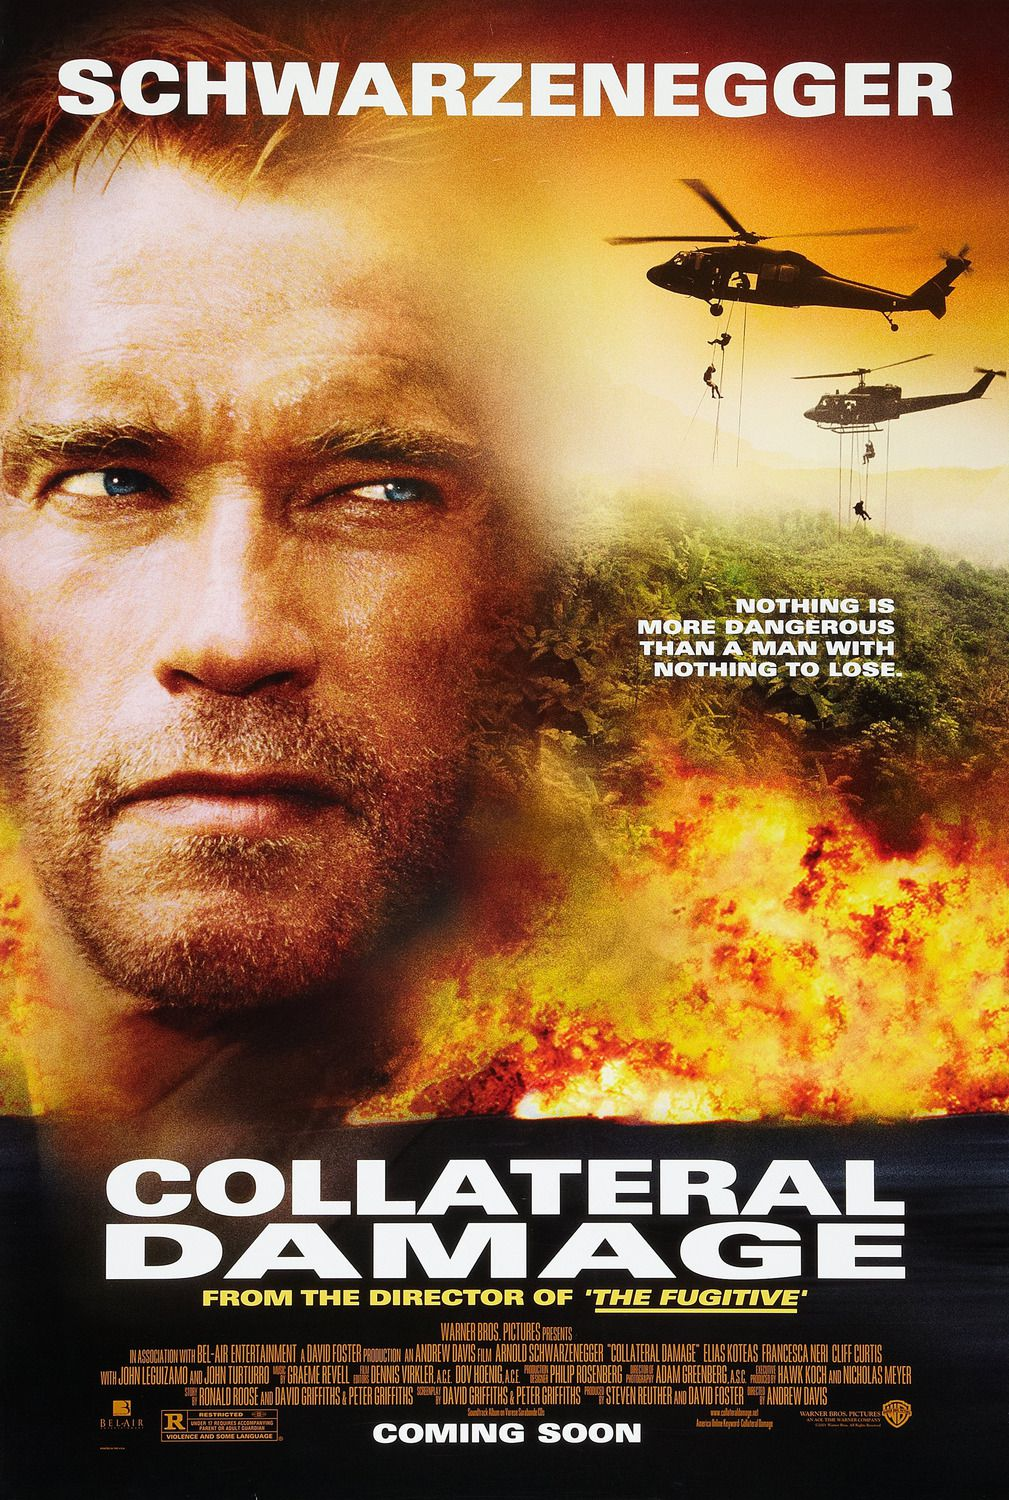 Collateral Damage (2002) - Cast: Arnold Schwarzenegger, Francesca Neri, Elias Koteas, Cliff Curtis - action film poster